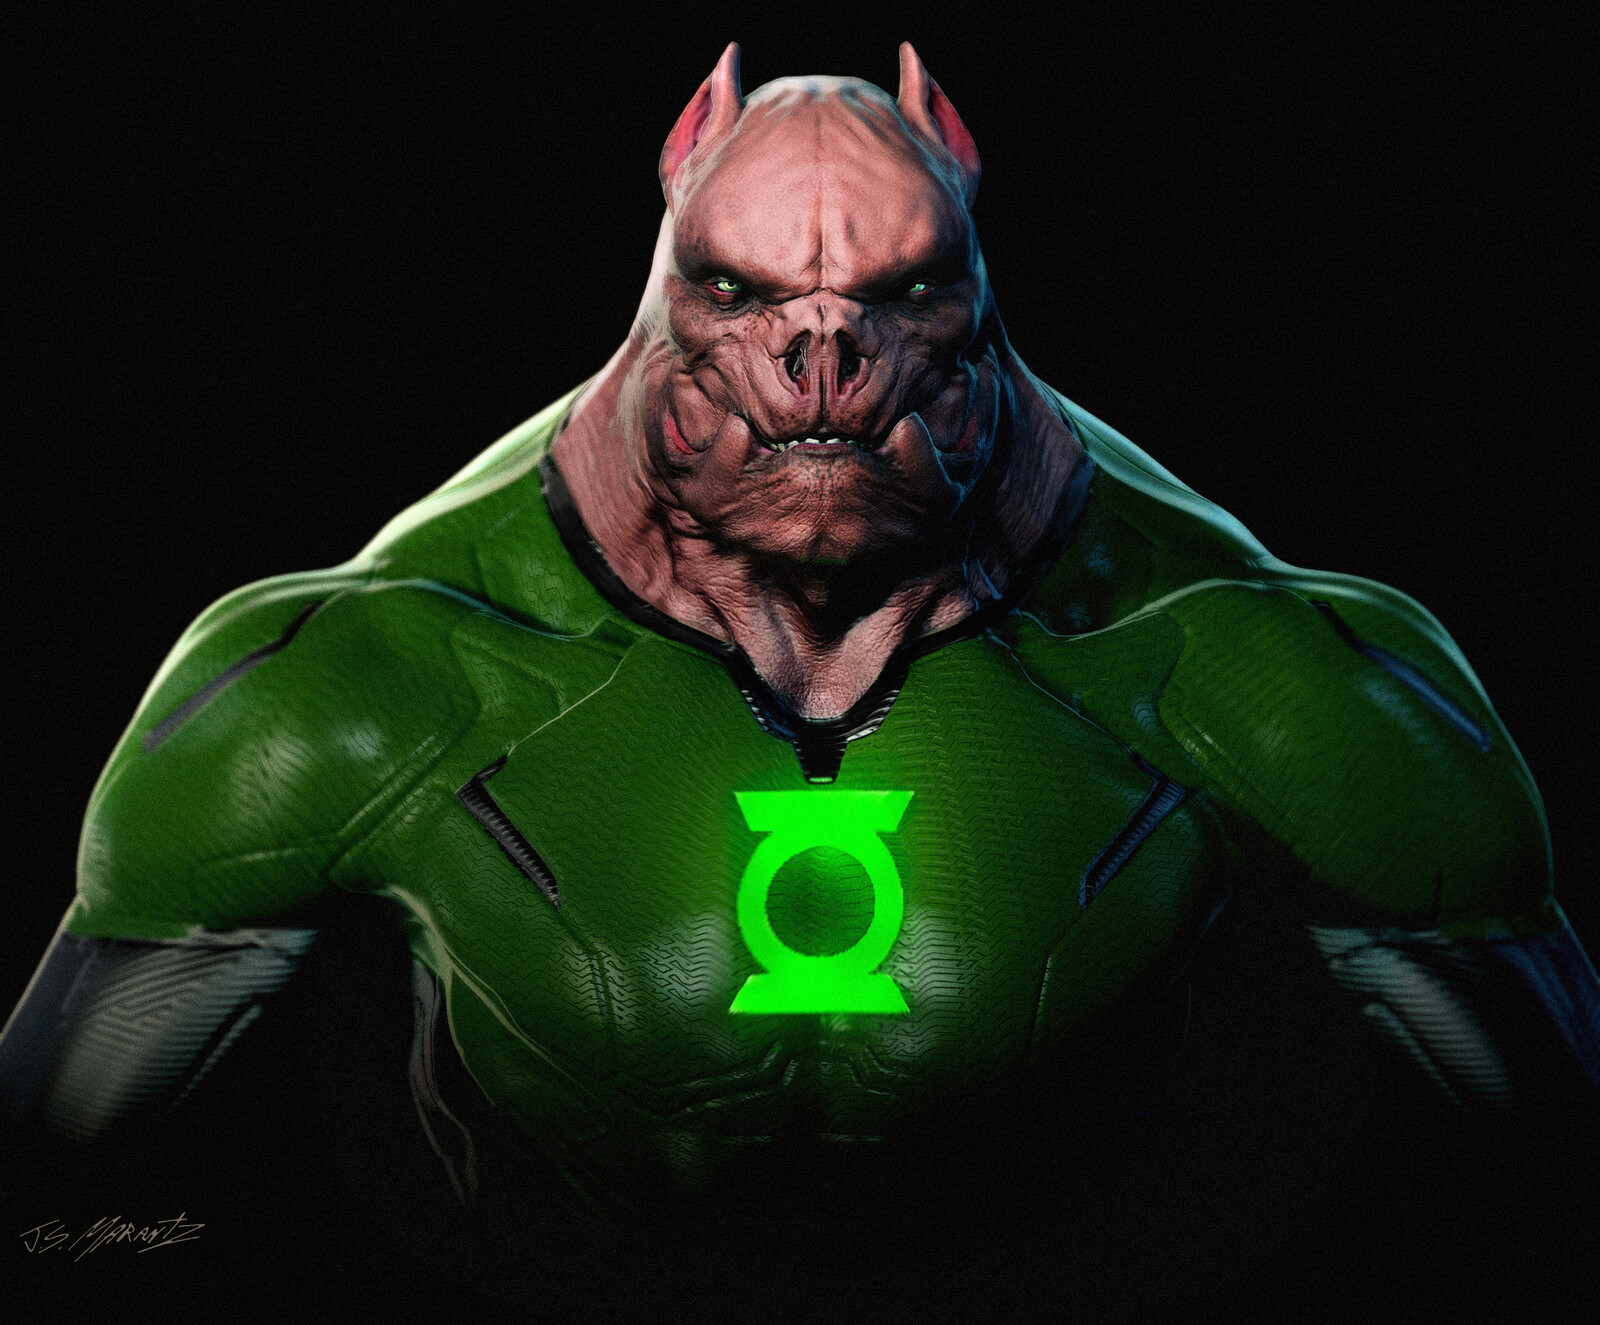 KILOWOG Designs for Zack Snyder's Justice League